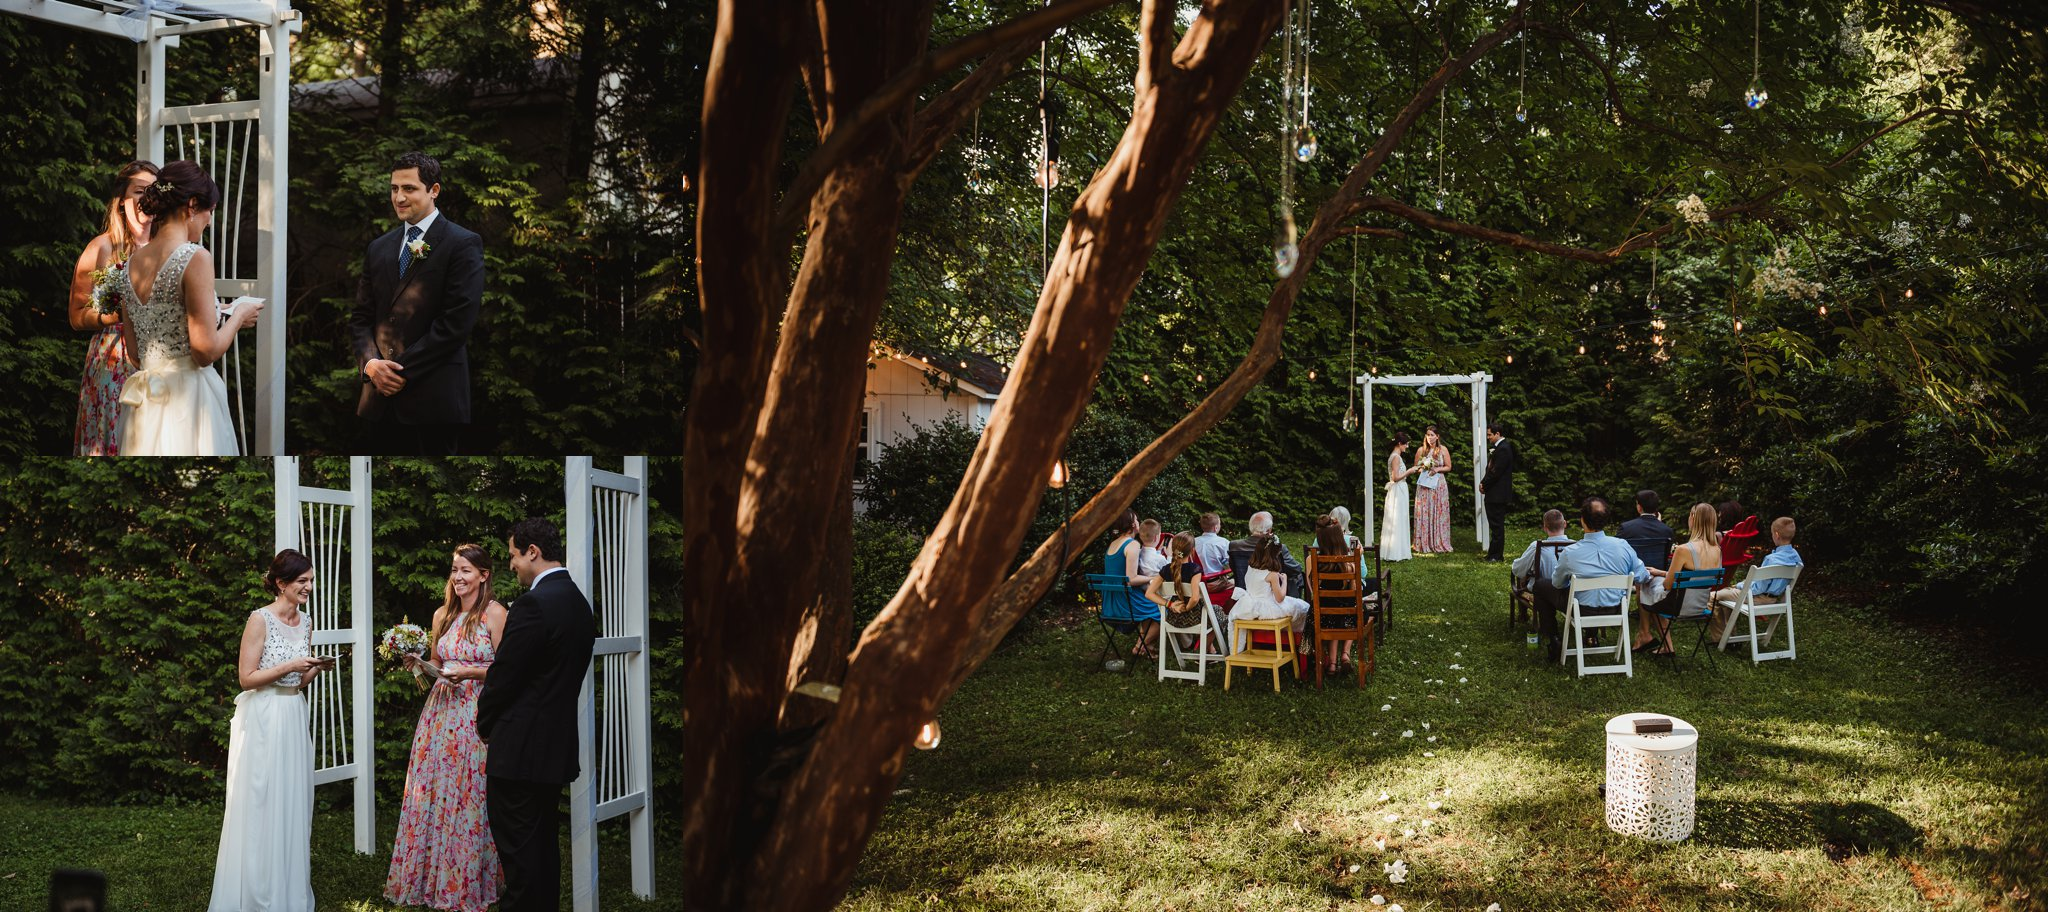 The bride read her vows during their intimate wedding ceremony that took place in their backyard in downtown Raleigh, North Carolina, photo by Rose Trail Images.